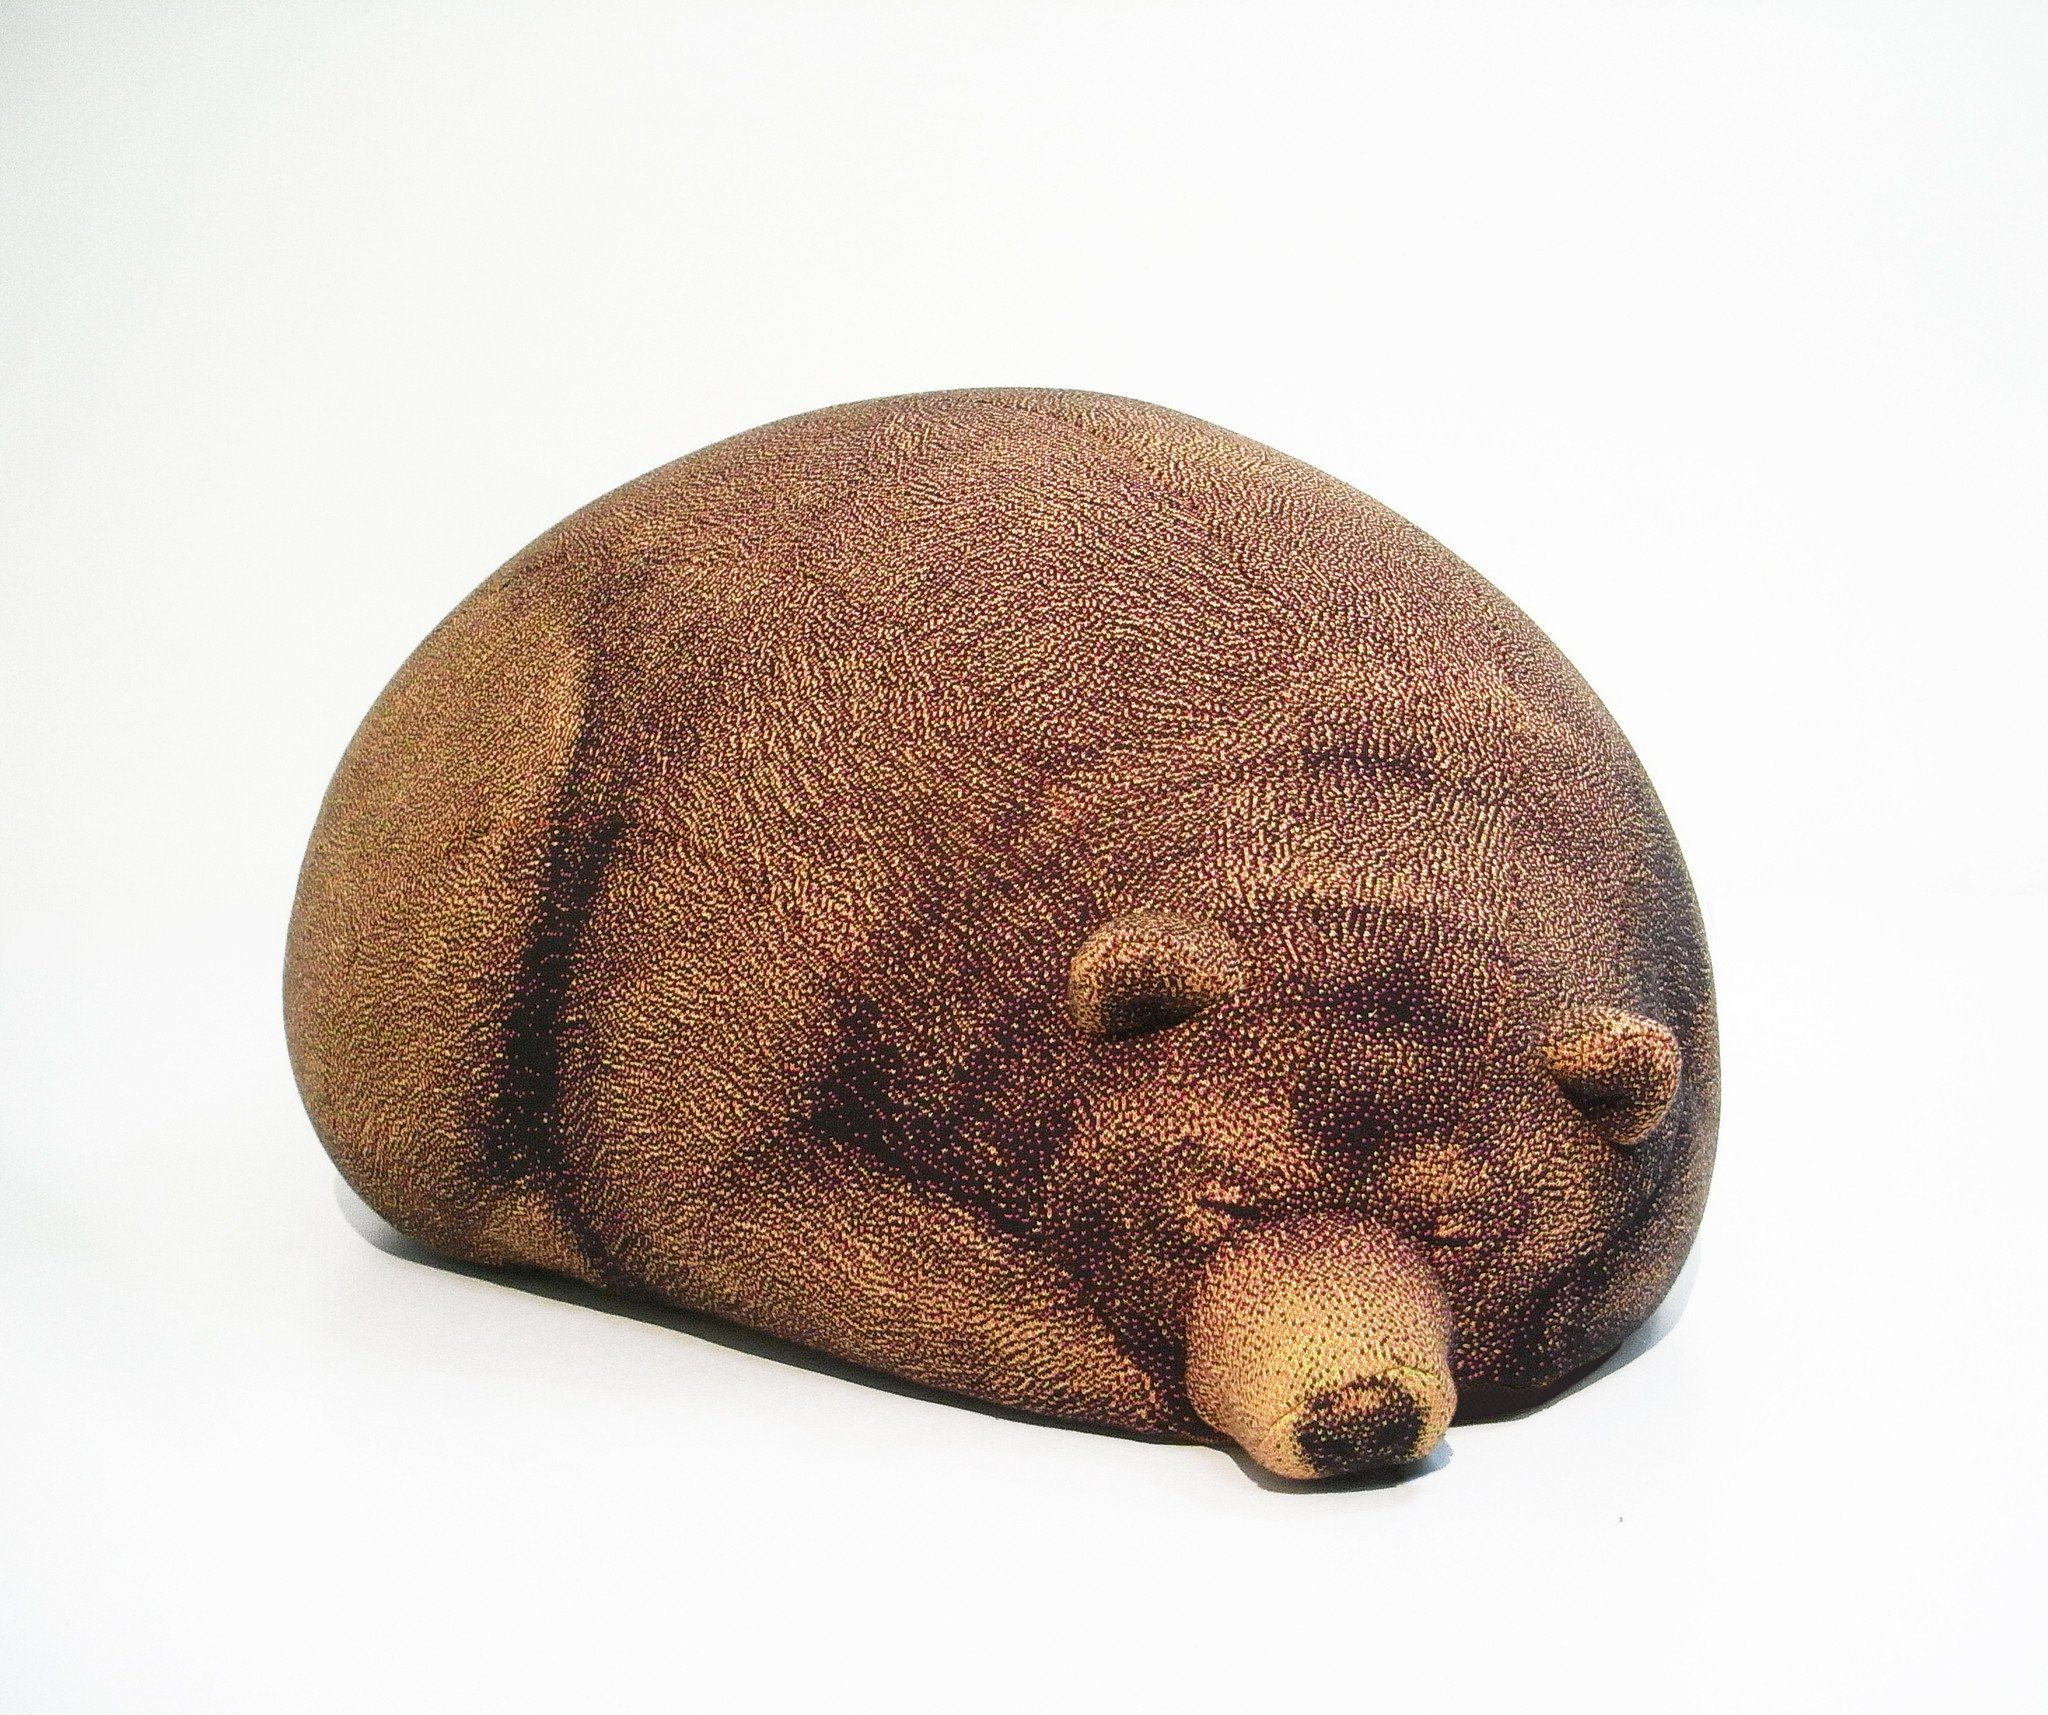 Sleeping Grizzly Bear Bean Bag (Pre-Order) - Bean Bags - Chic Sin Design - Naiise